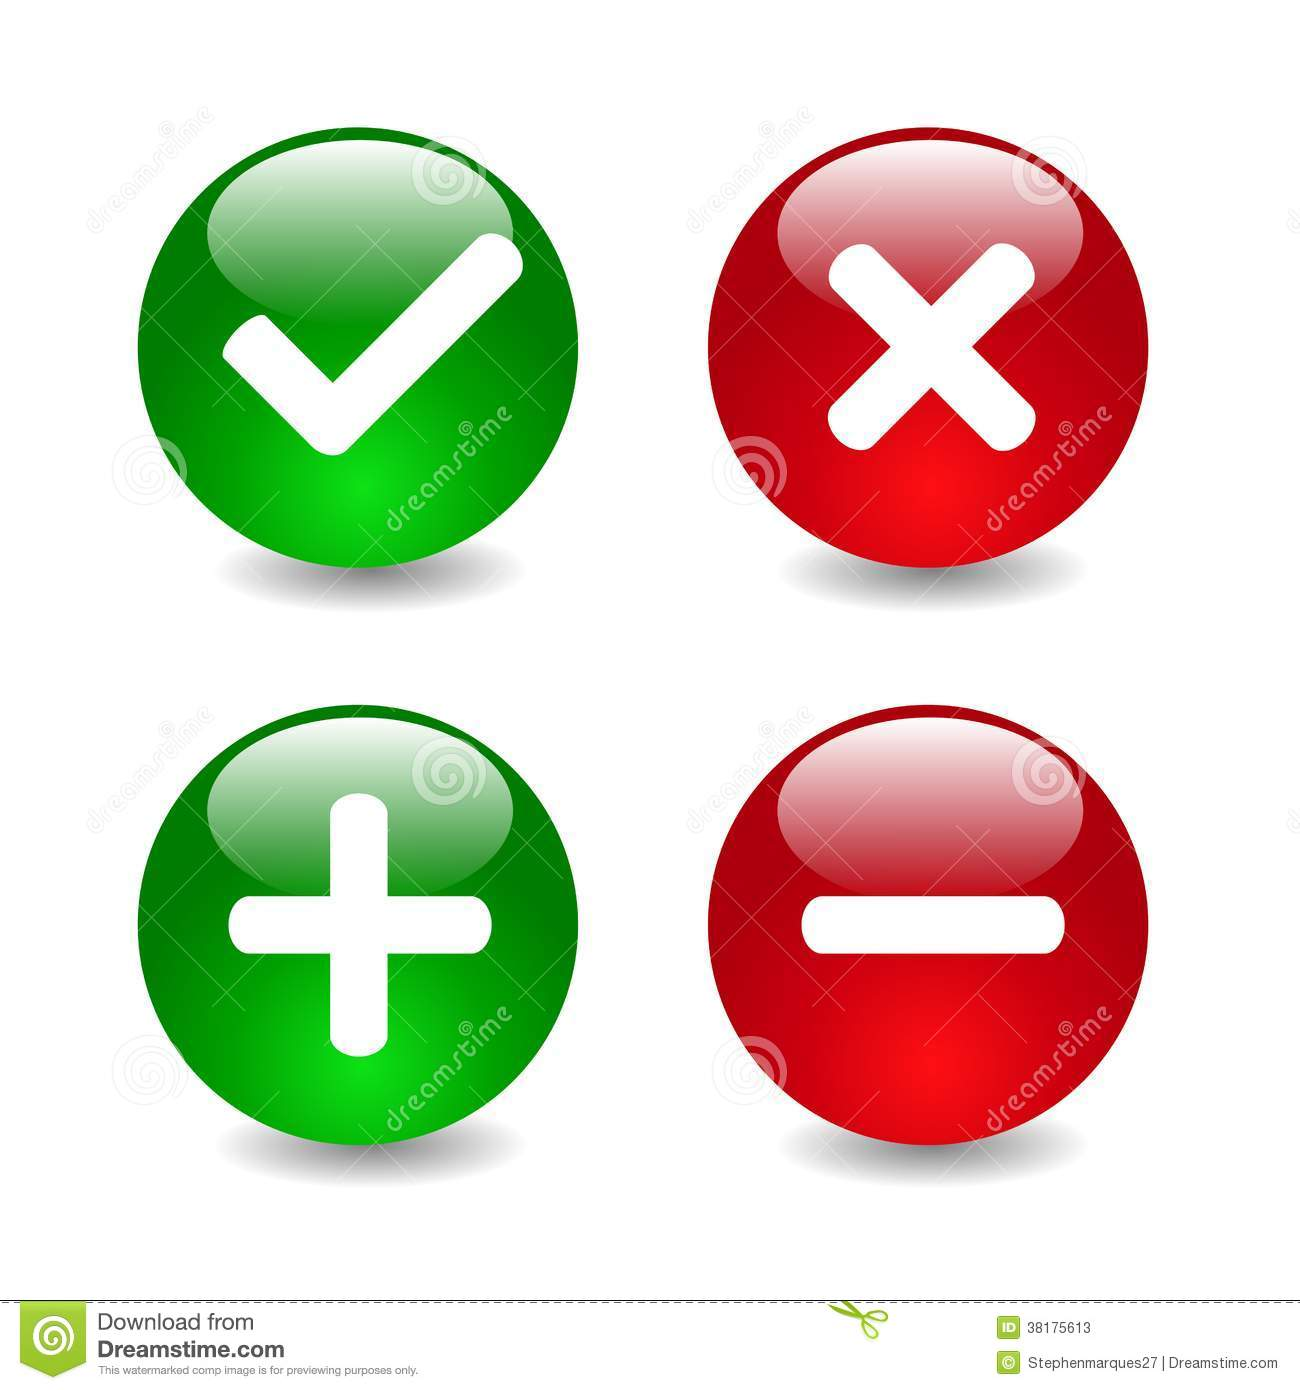 Check Mark Icons Illustration Stock Photos - Image: 38175613 X And Check Icon